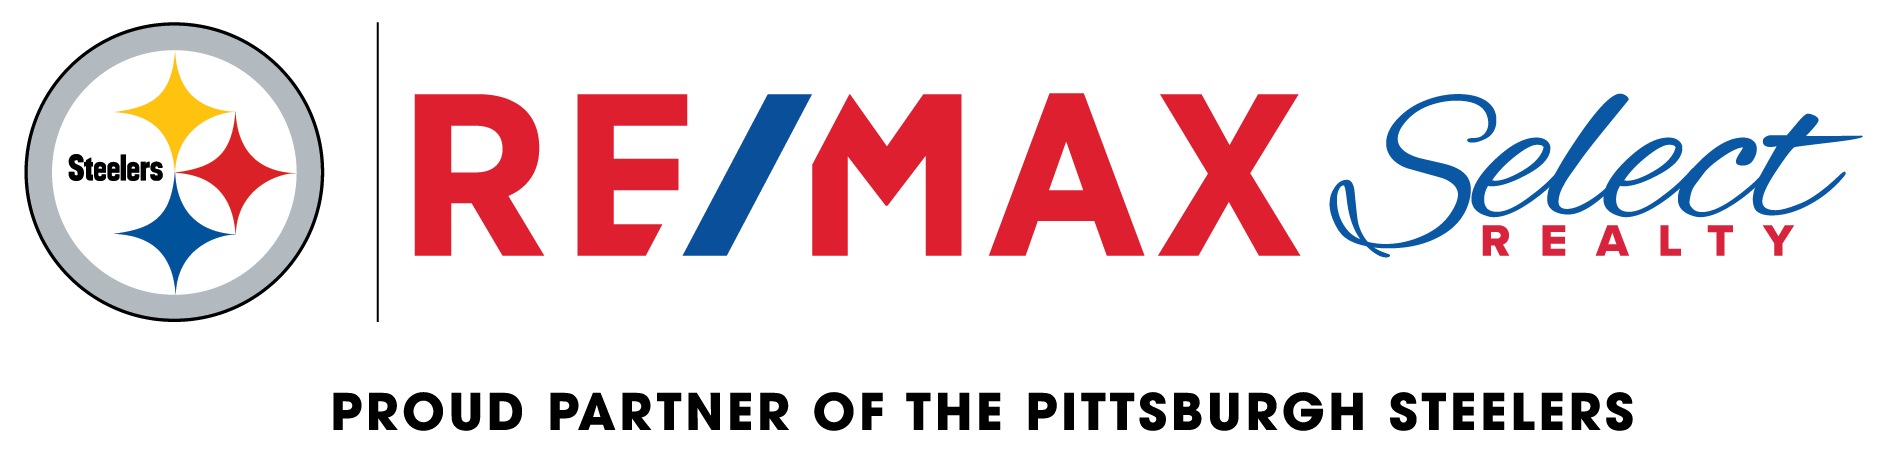 RE/MAX Select Realty - McCandless Logo